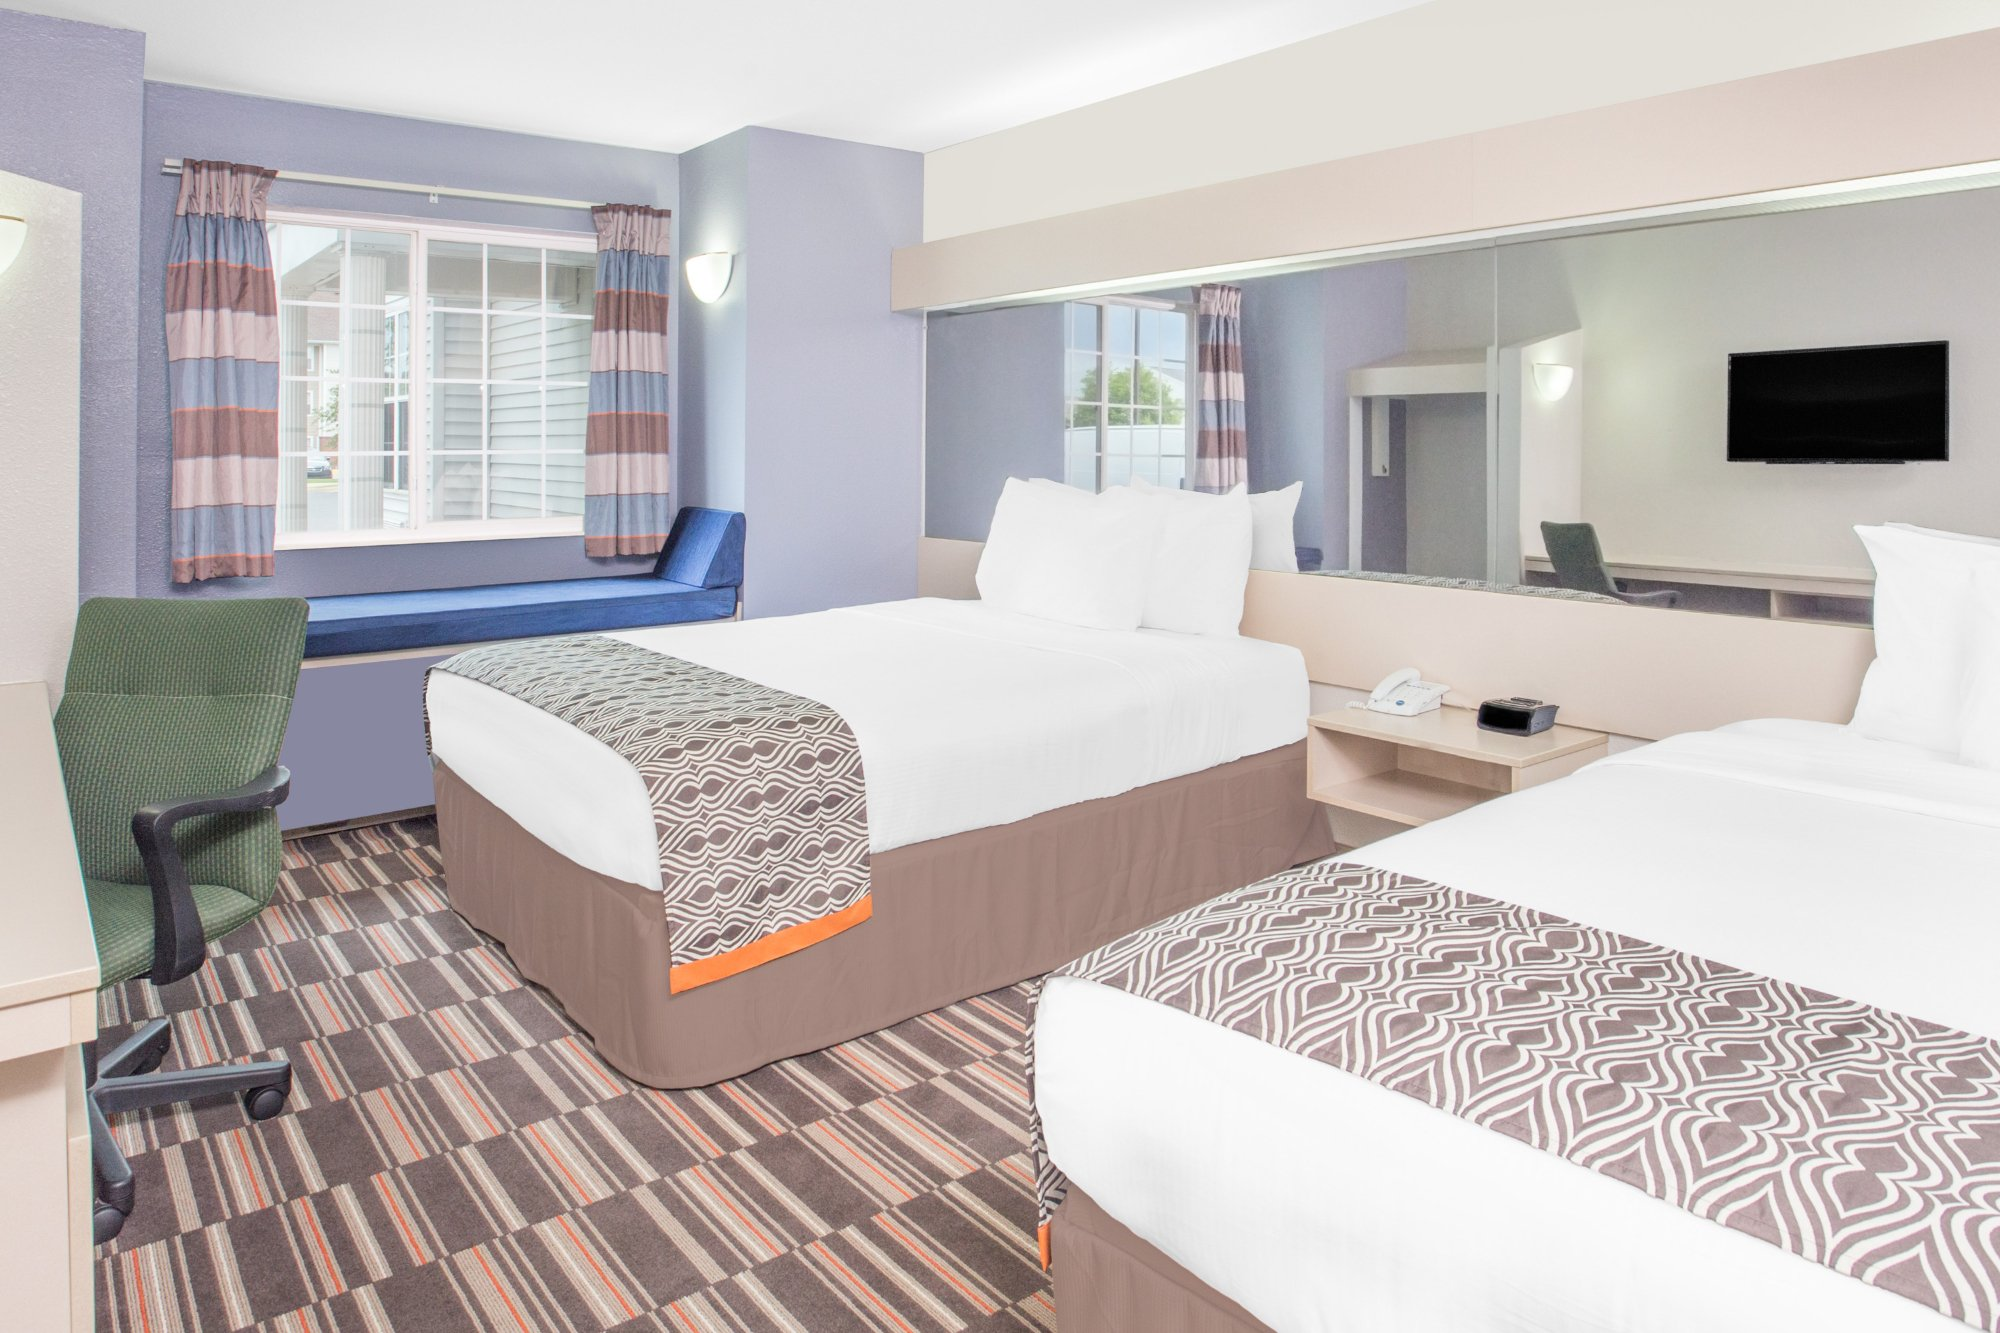 Microtel Inn & Suites by Wyndham Appleton